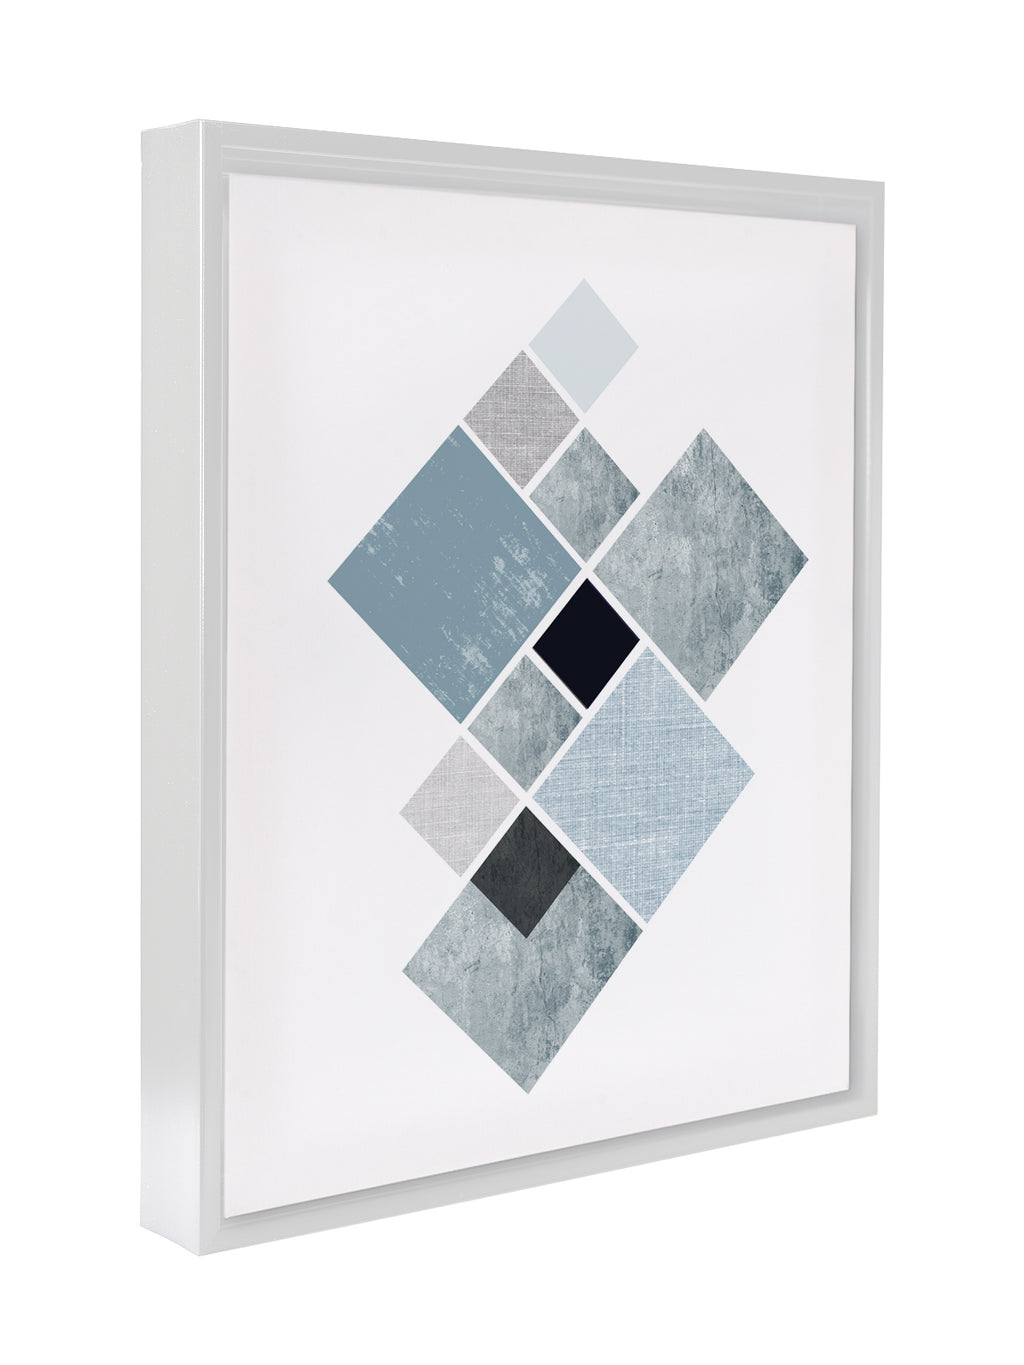 GREY SHAPES Premium Framed Gallery Wrap By Honeytree Prints